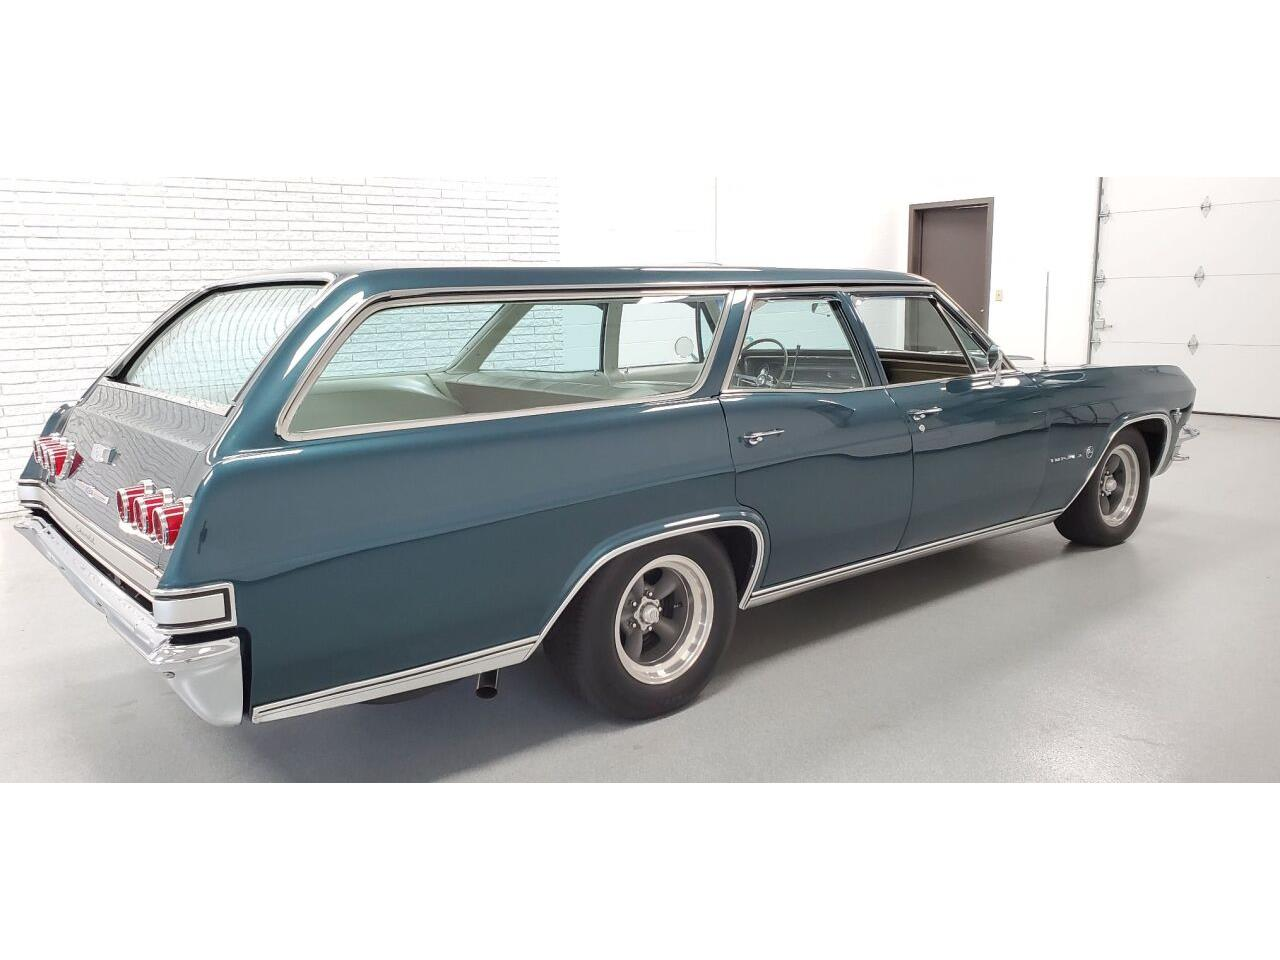 1965 Chevrolet Impala (CC-1410317) for sale in Watertown, Wisconsin